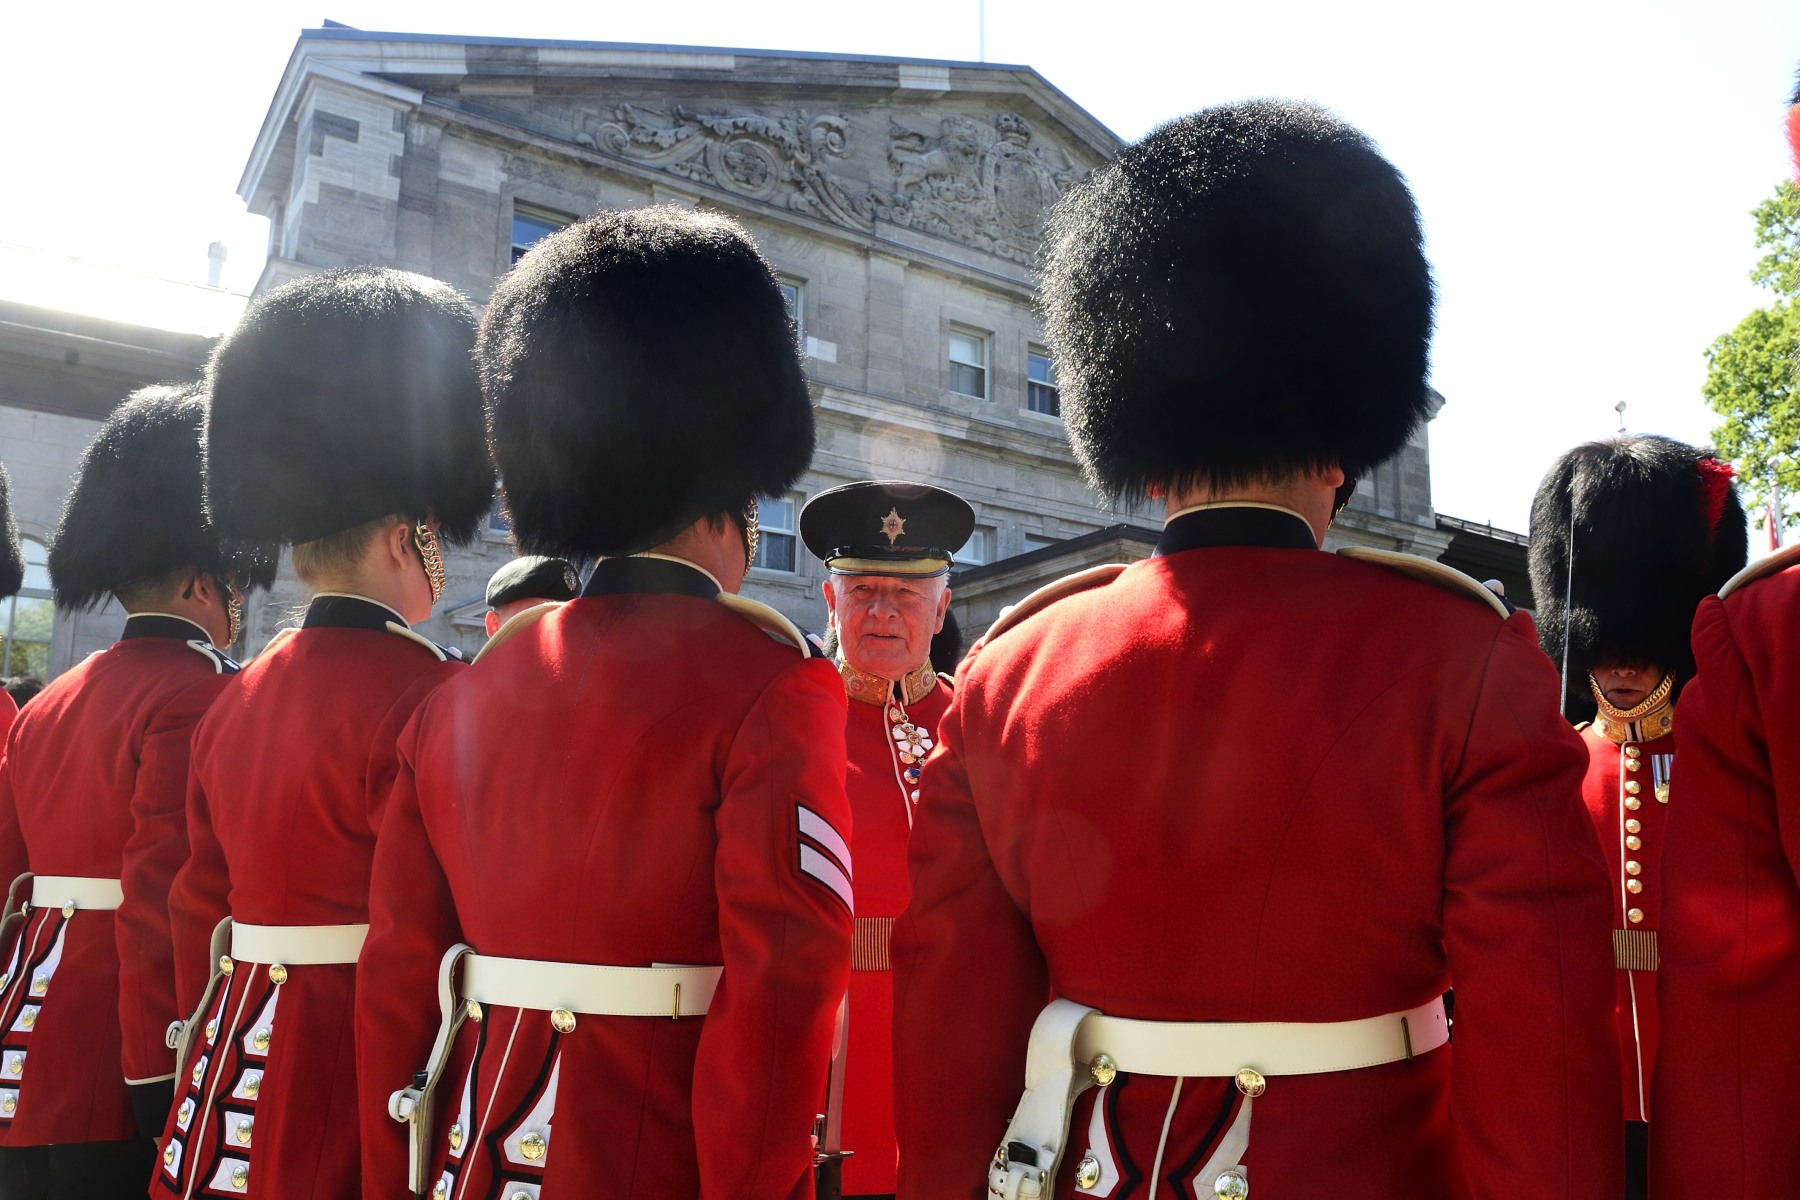 During the inspection, His Excellency stopped and said a few words to some members of the Ceremonial Guard.